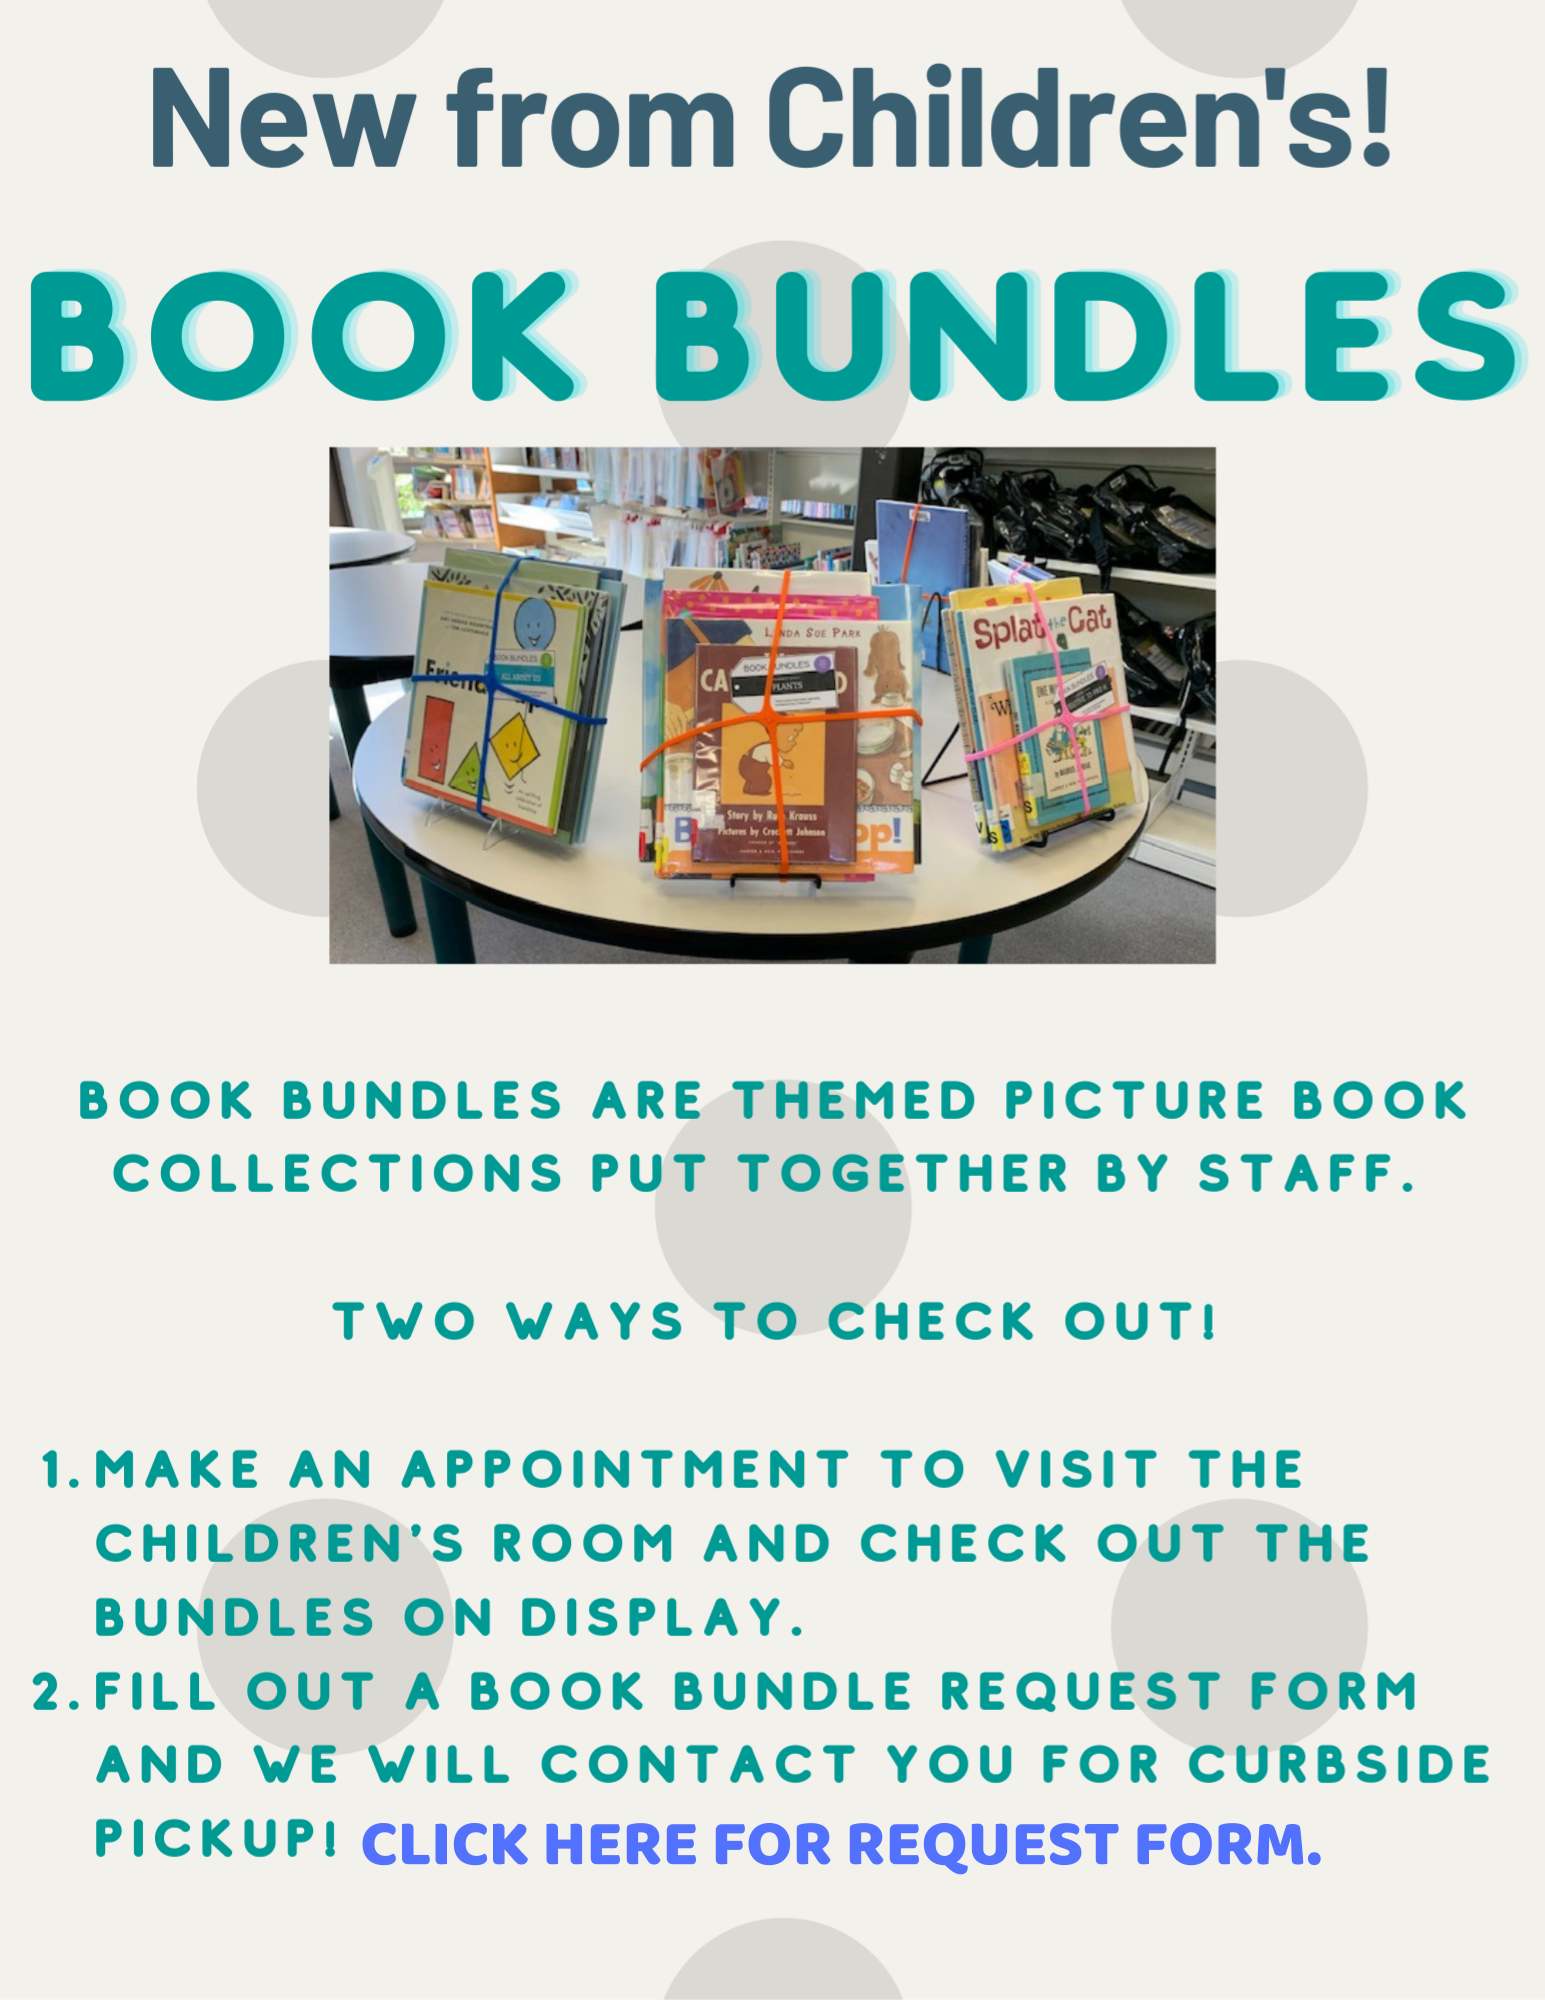 New from Children's!  Book Bundles.  Book Bundles are themed picture book collections put together by staff.  Two ways to check out.  1 - Make an appointment to visit the children's room and check out the bundles on display.  2. - Fill out a book bundle request form and a librarian will contact you for curbside pickup.